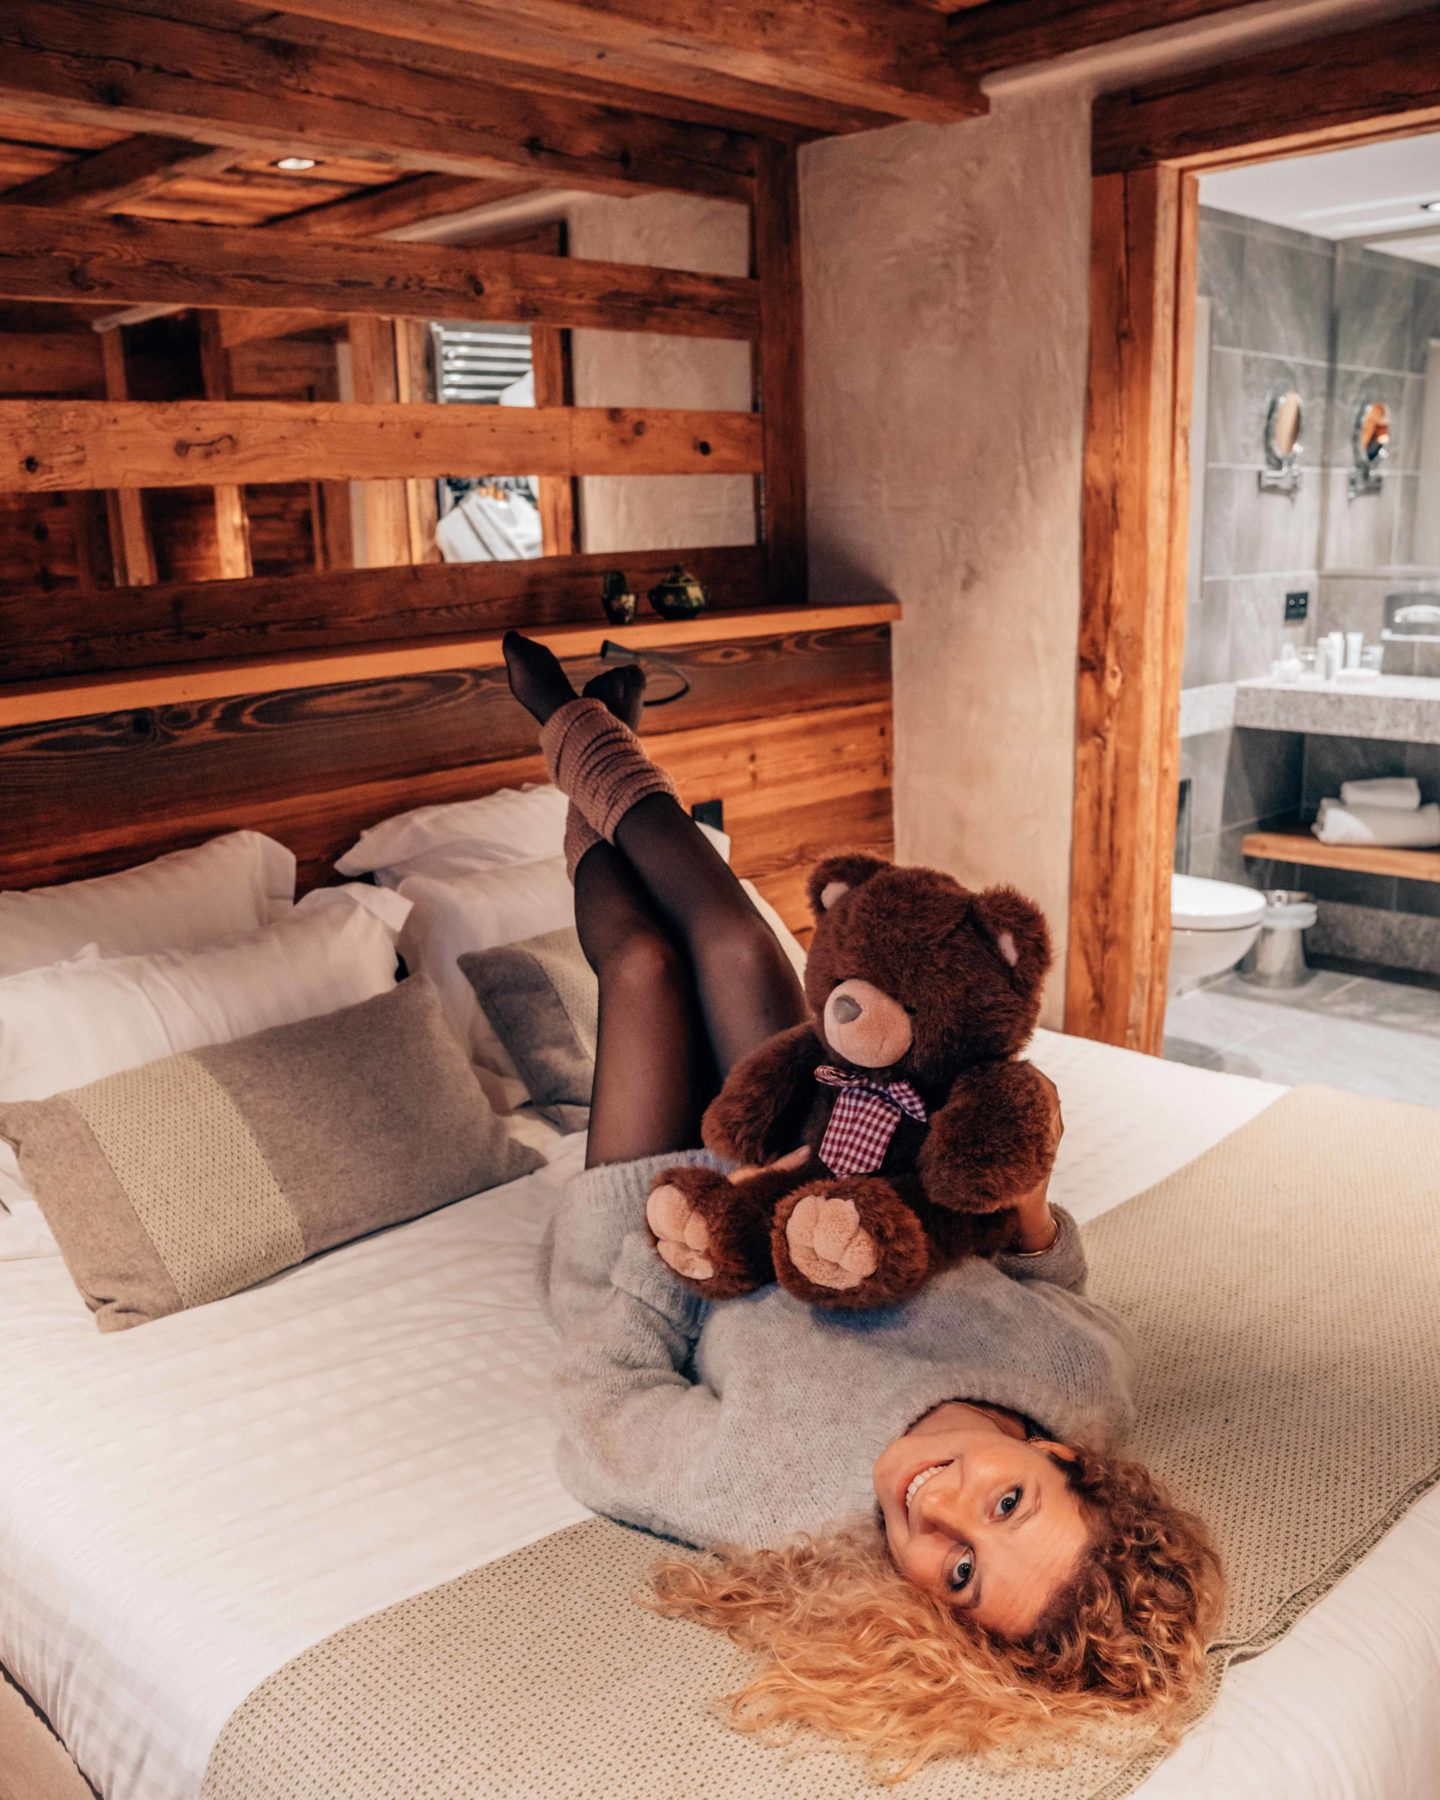 Mountain cabin hotel room in Megeve